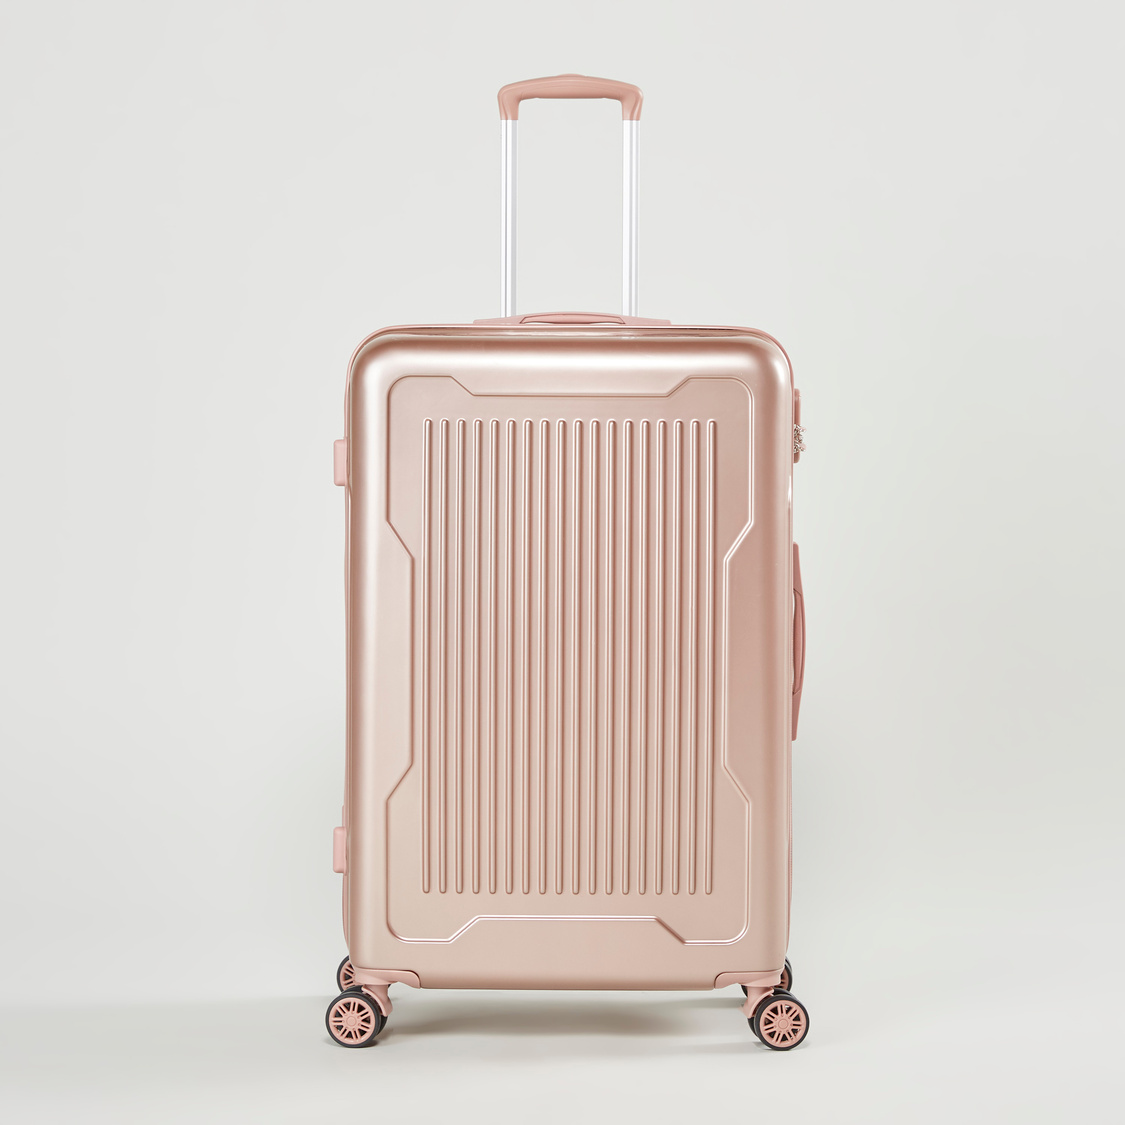 Textured Hard Case Trolley Bag with Swivel Wheels - 51x30x77 cms